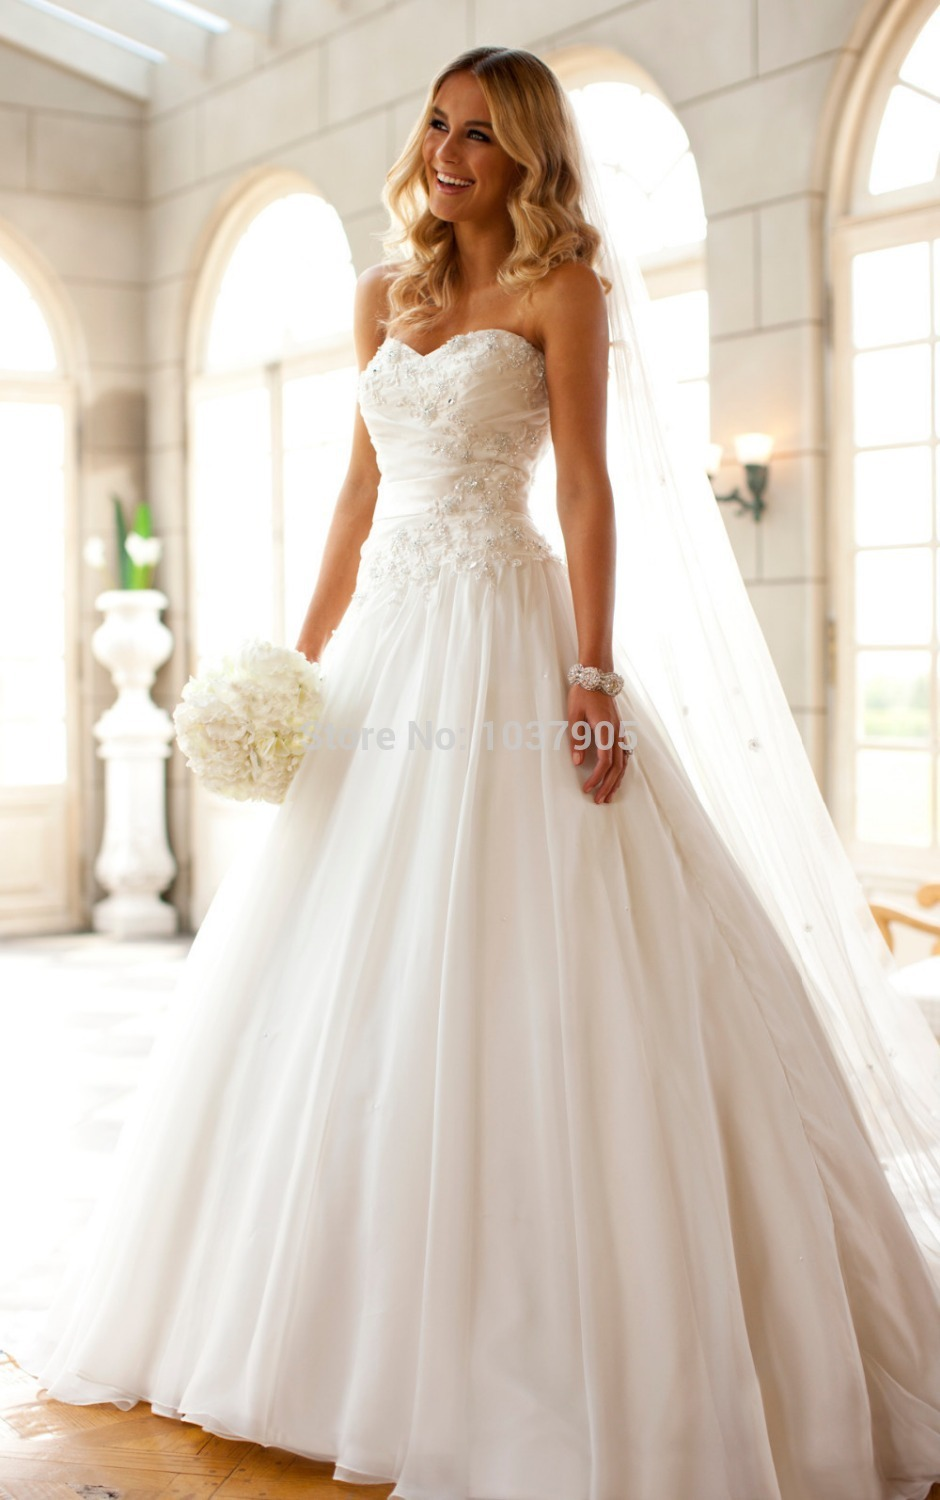 Style n70344 debutante dress - Style N70344 Debutante Dress Simple Dress For Debutante Made Simple Wedding Dress Download